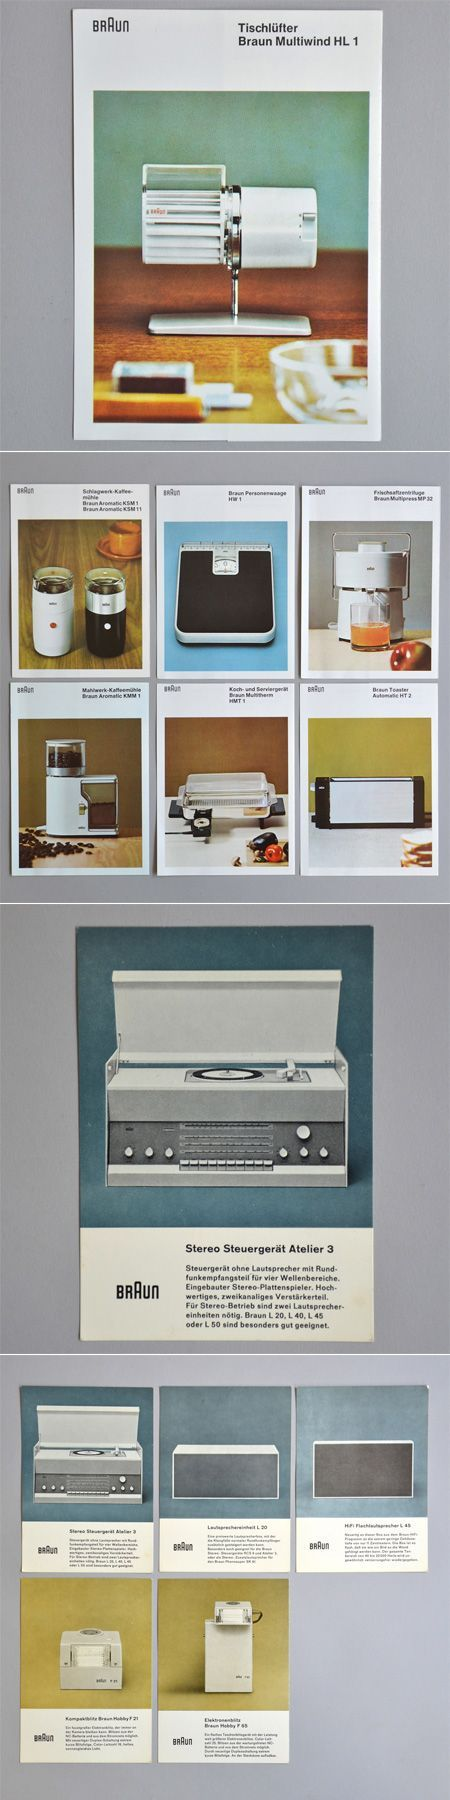 *** Advertisement inspiration that could be translated to the website. Usage of the cream color. This is an example of how you can keep the layout the same and just change imagery to establish continuity in your brand. *** Braun Brochures